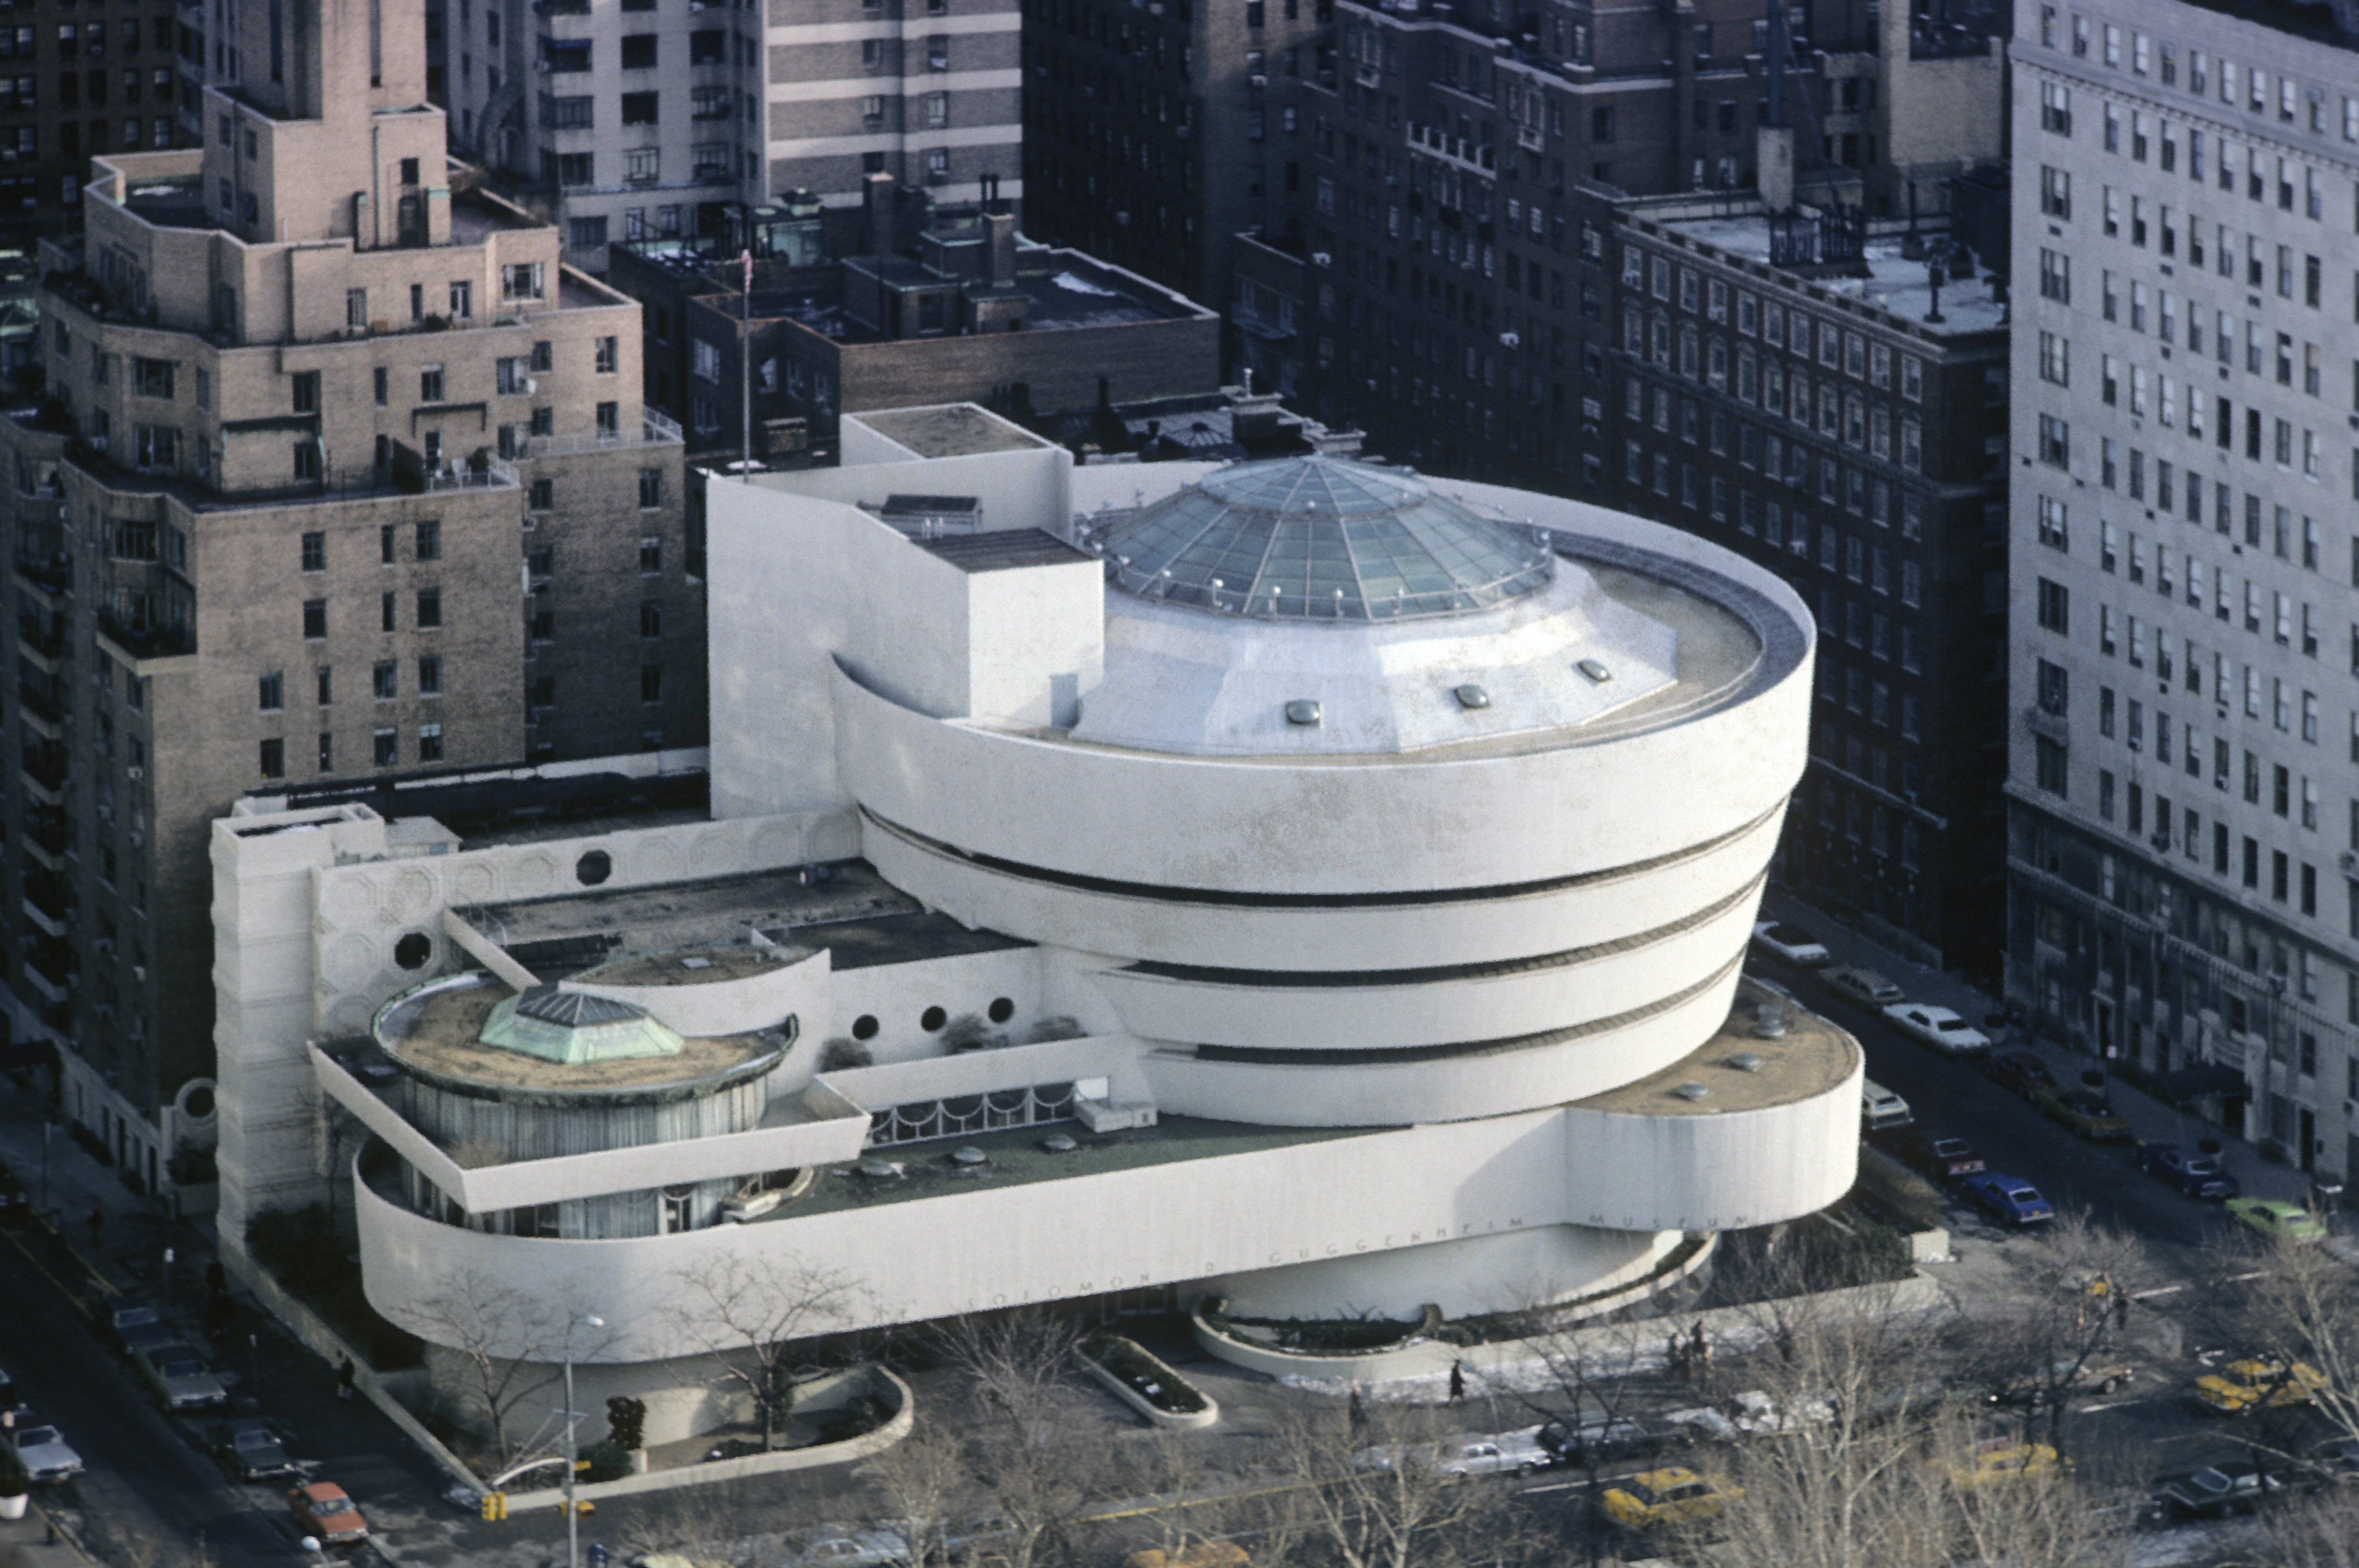 Aerial view of the Guggenheim Museum in NYC